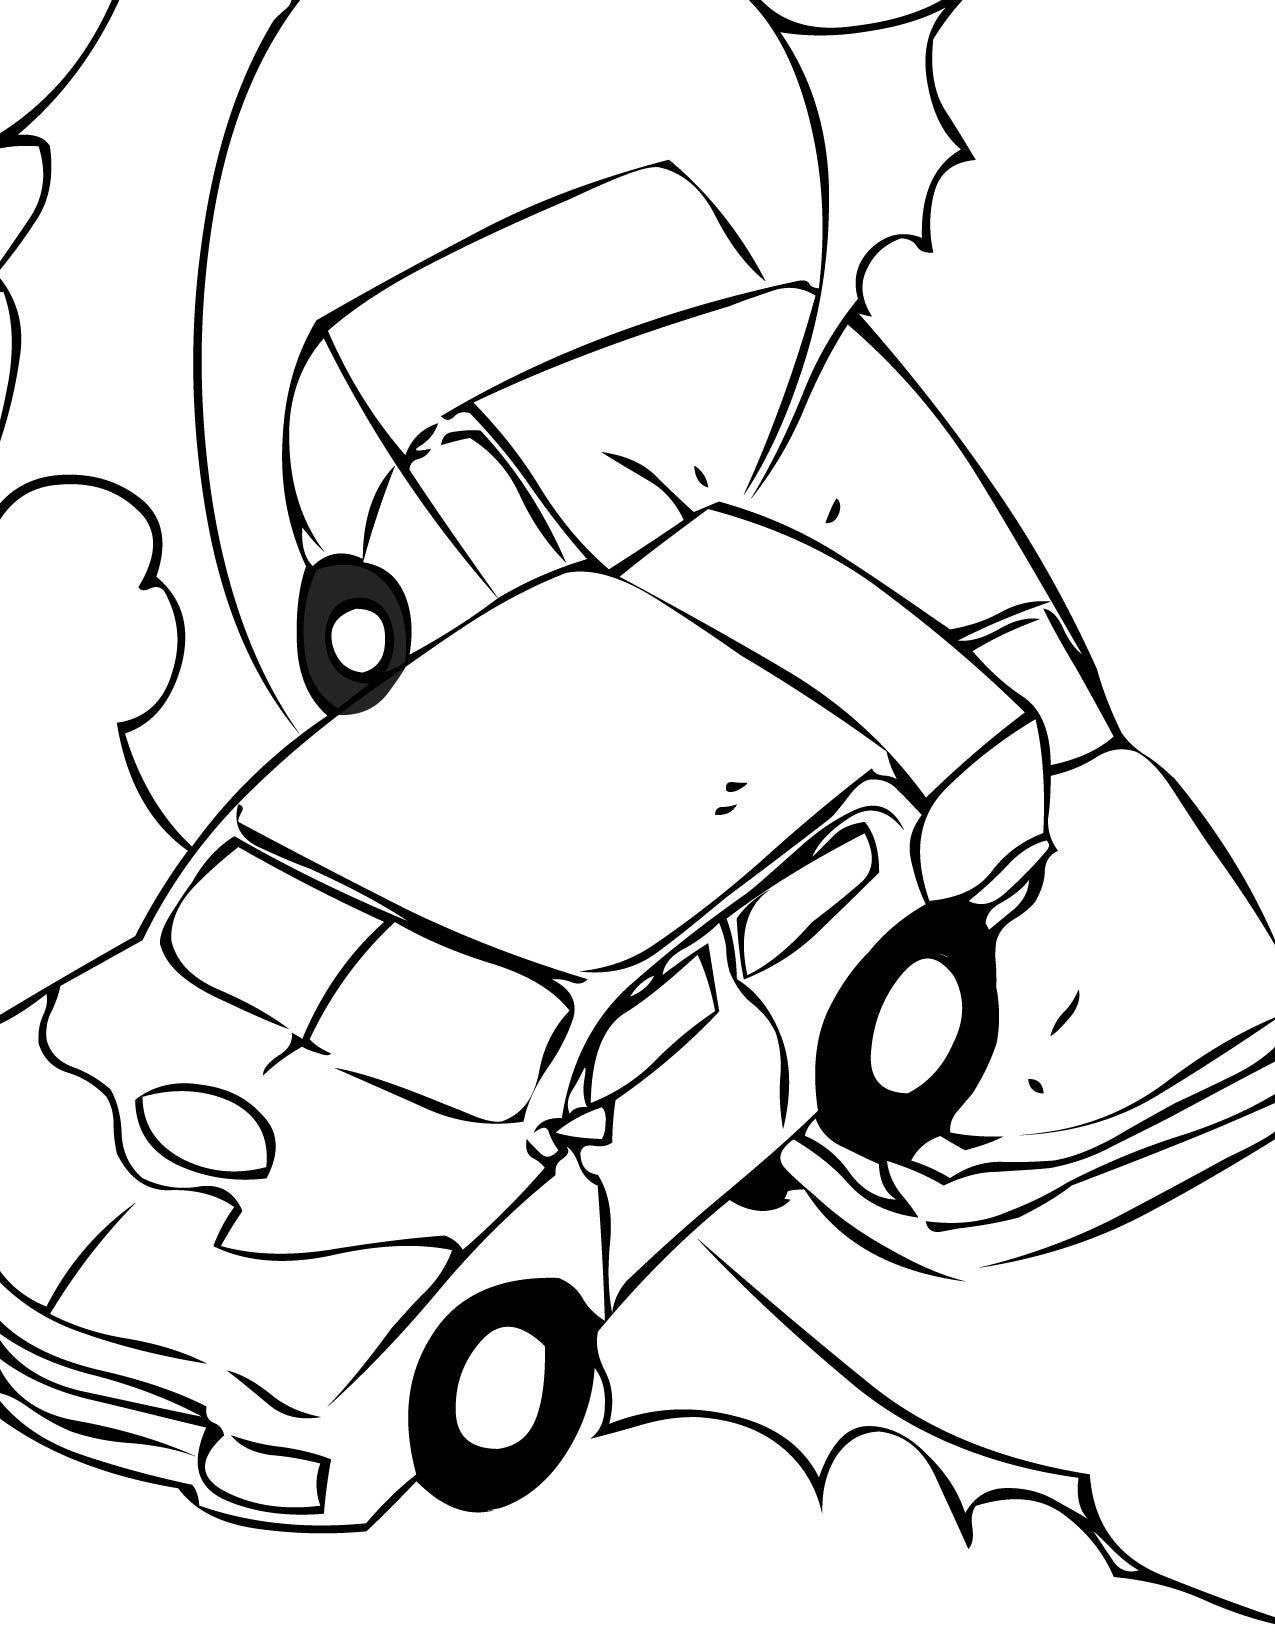 Derby Car Coloring Sheets Background